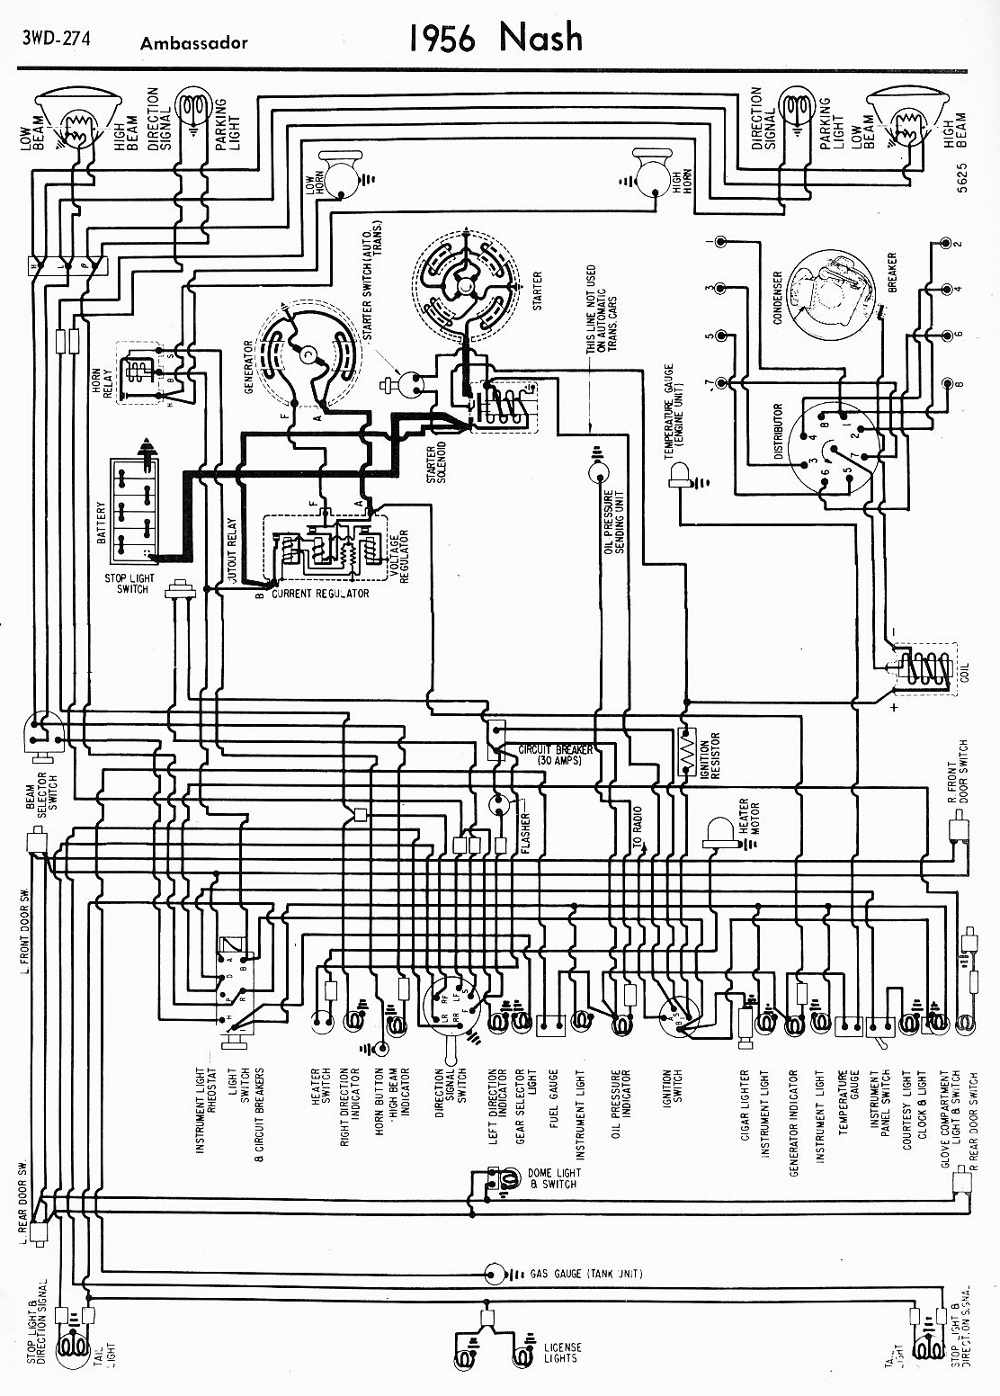 1964 Dodge Dart Wiring Diagram Porsche 928 Instrument Cluster Schematics Electrical 1966 Ignition Schematic Diagrams Cargo Cover Charger